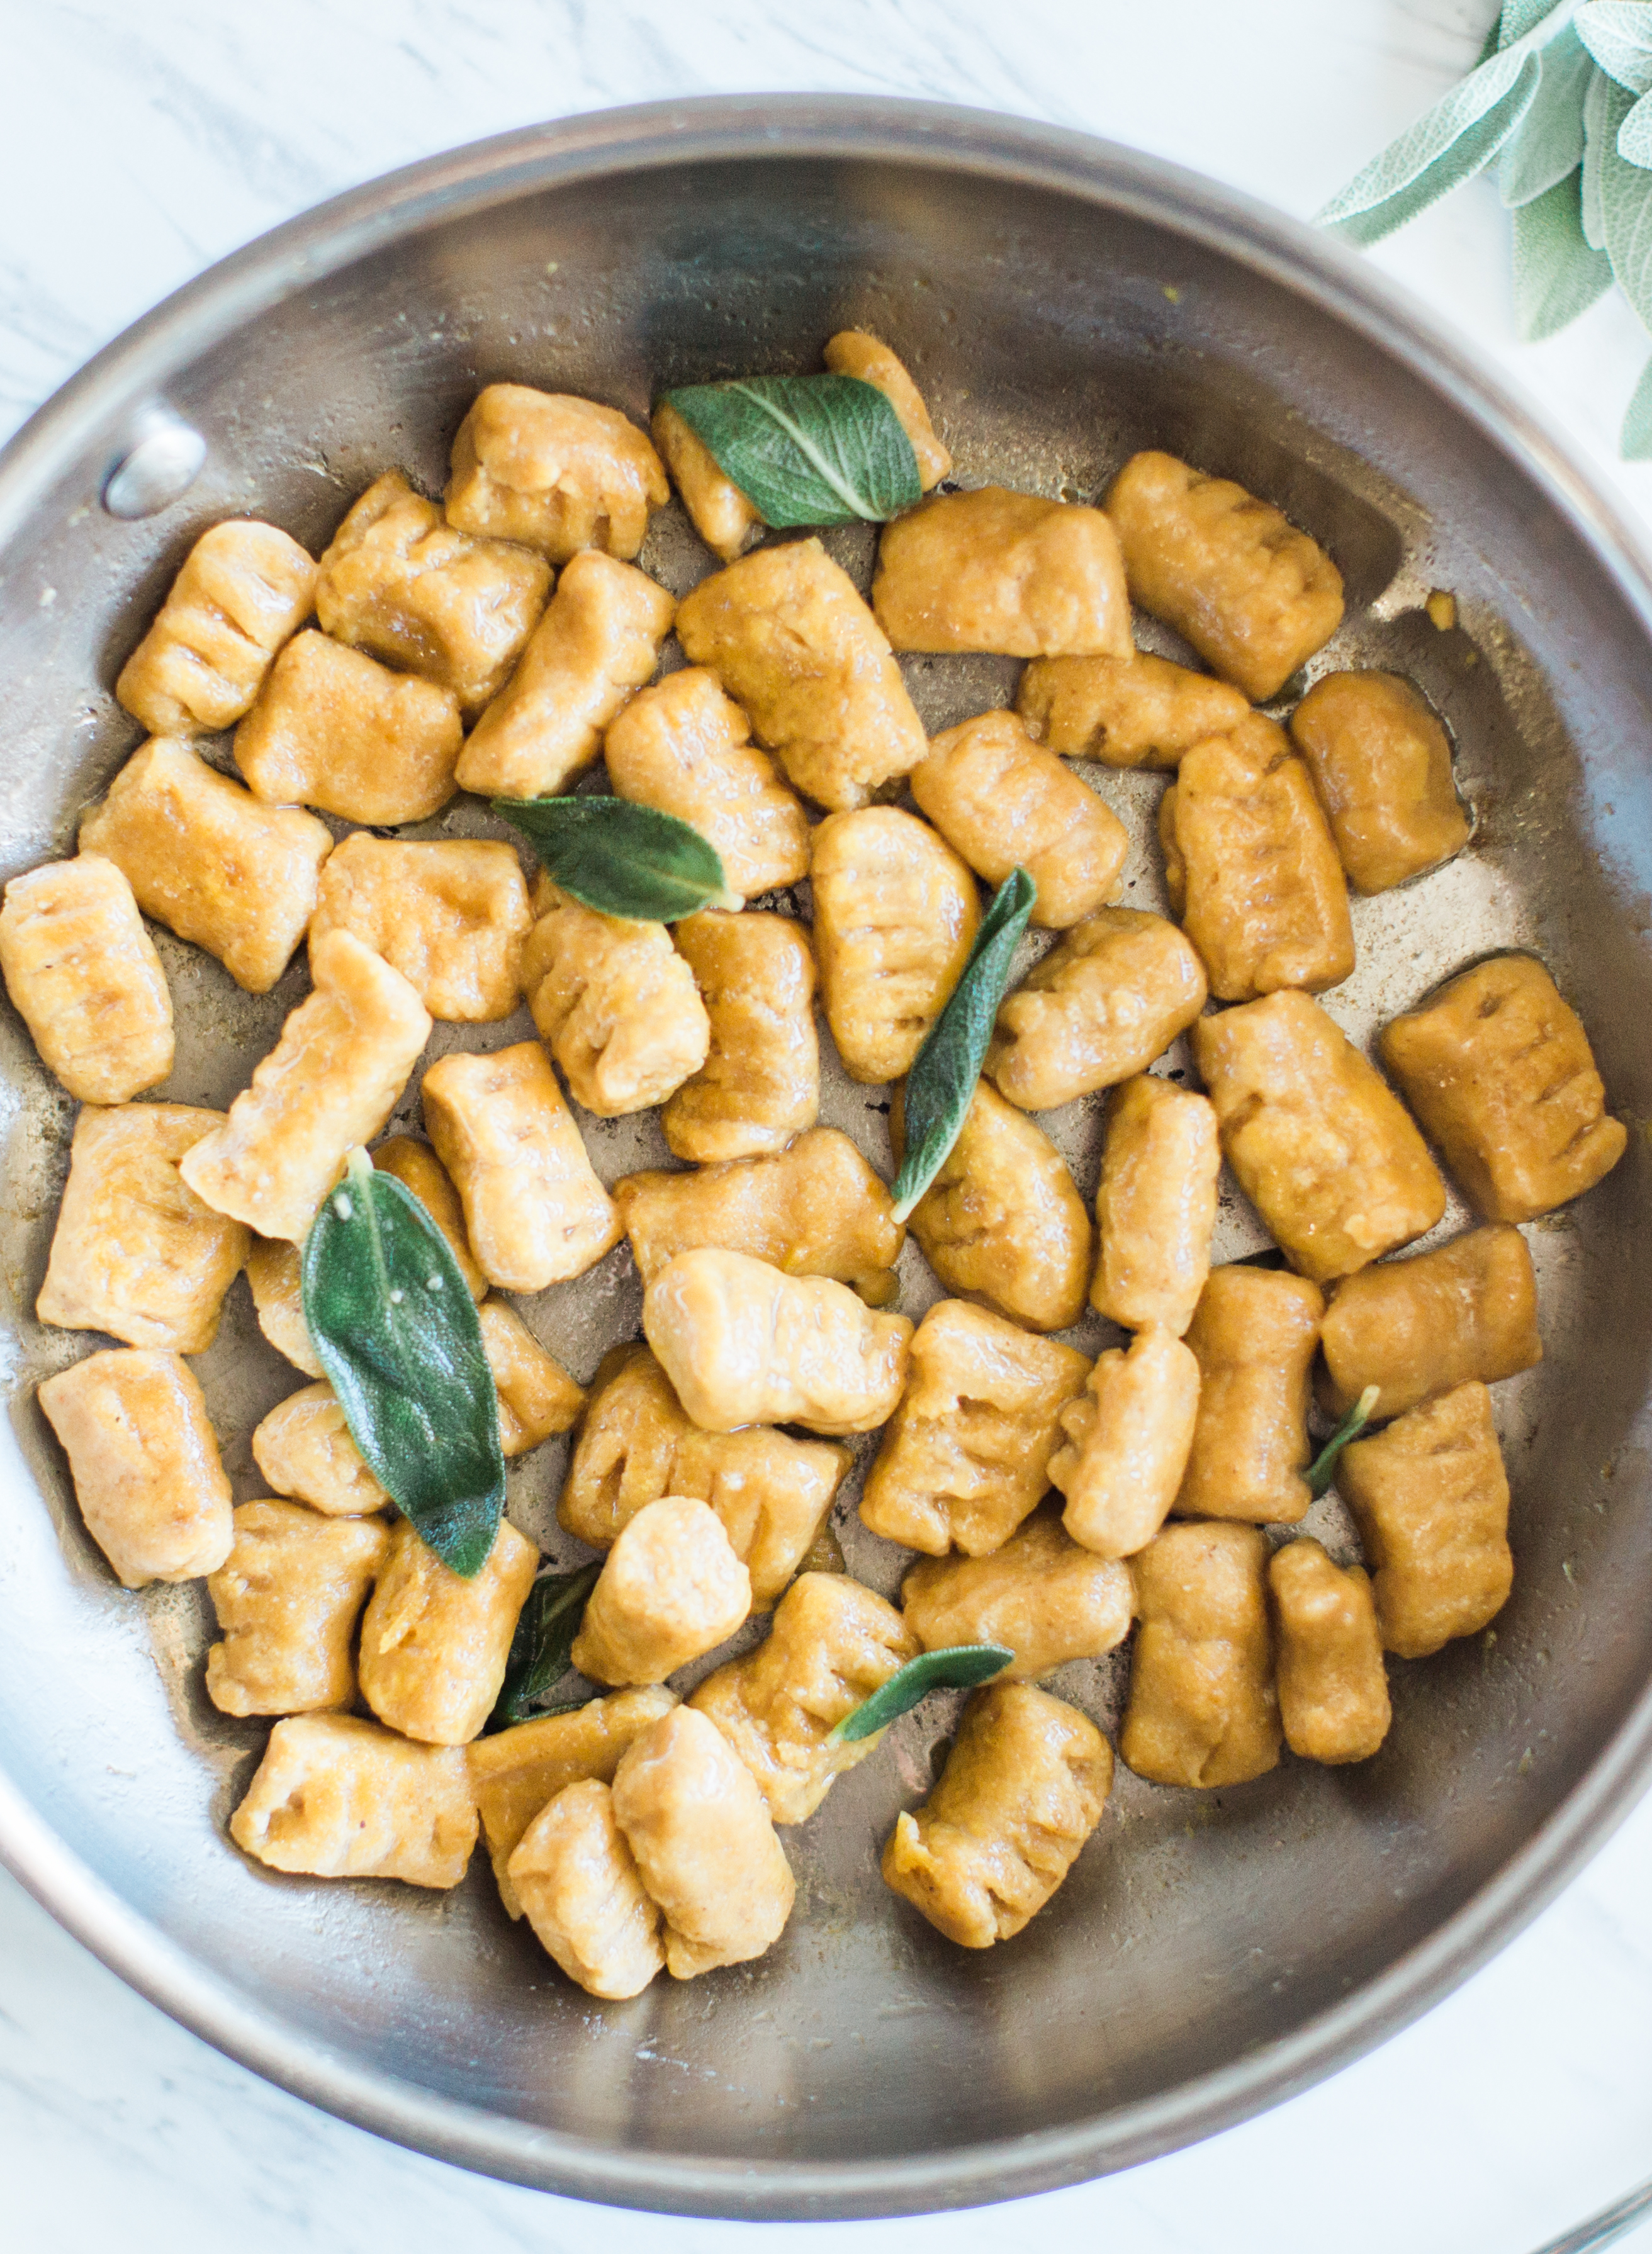 Paleo Pumpkin Gnocchi | Her Heart and Table | Paleo Food Blog